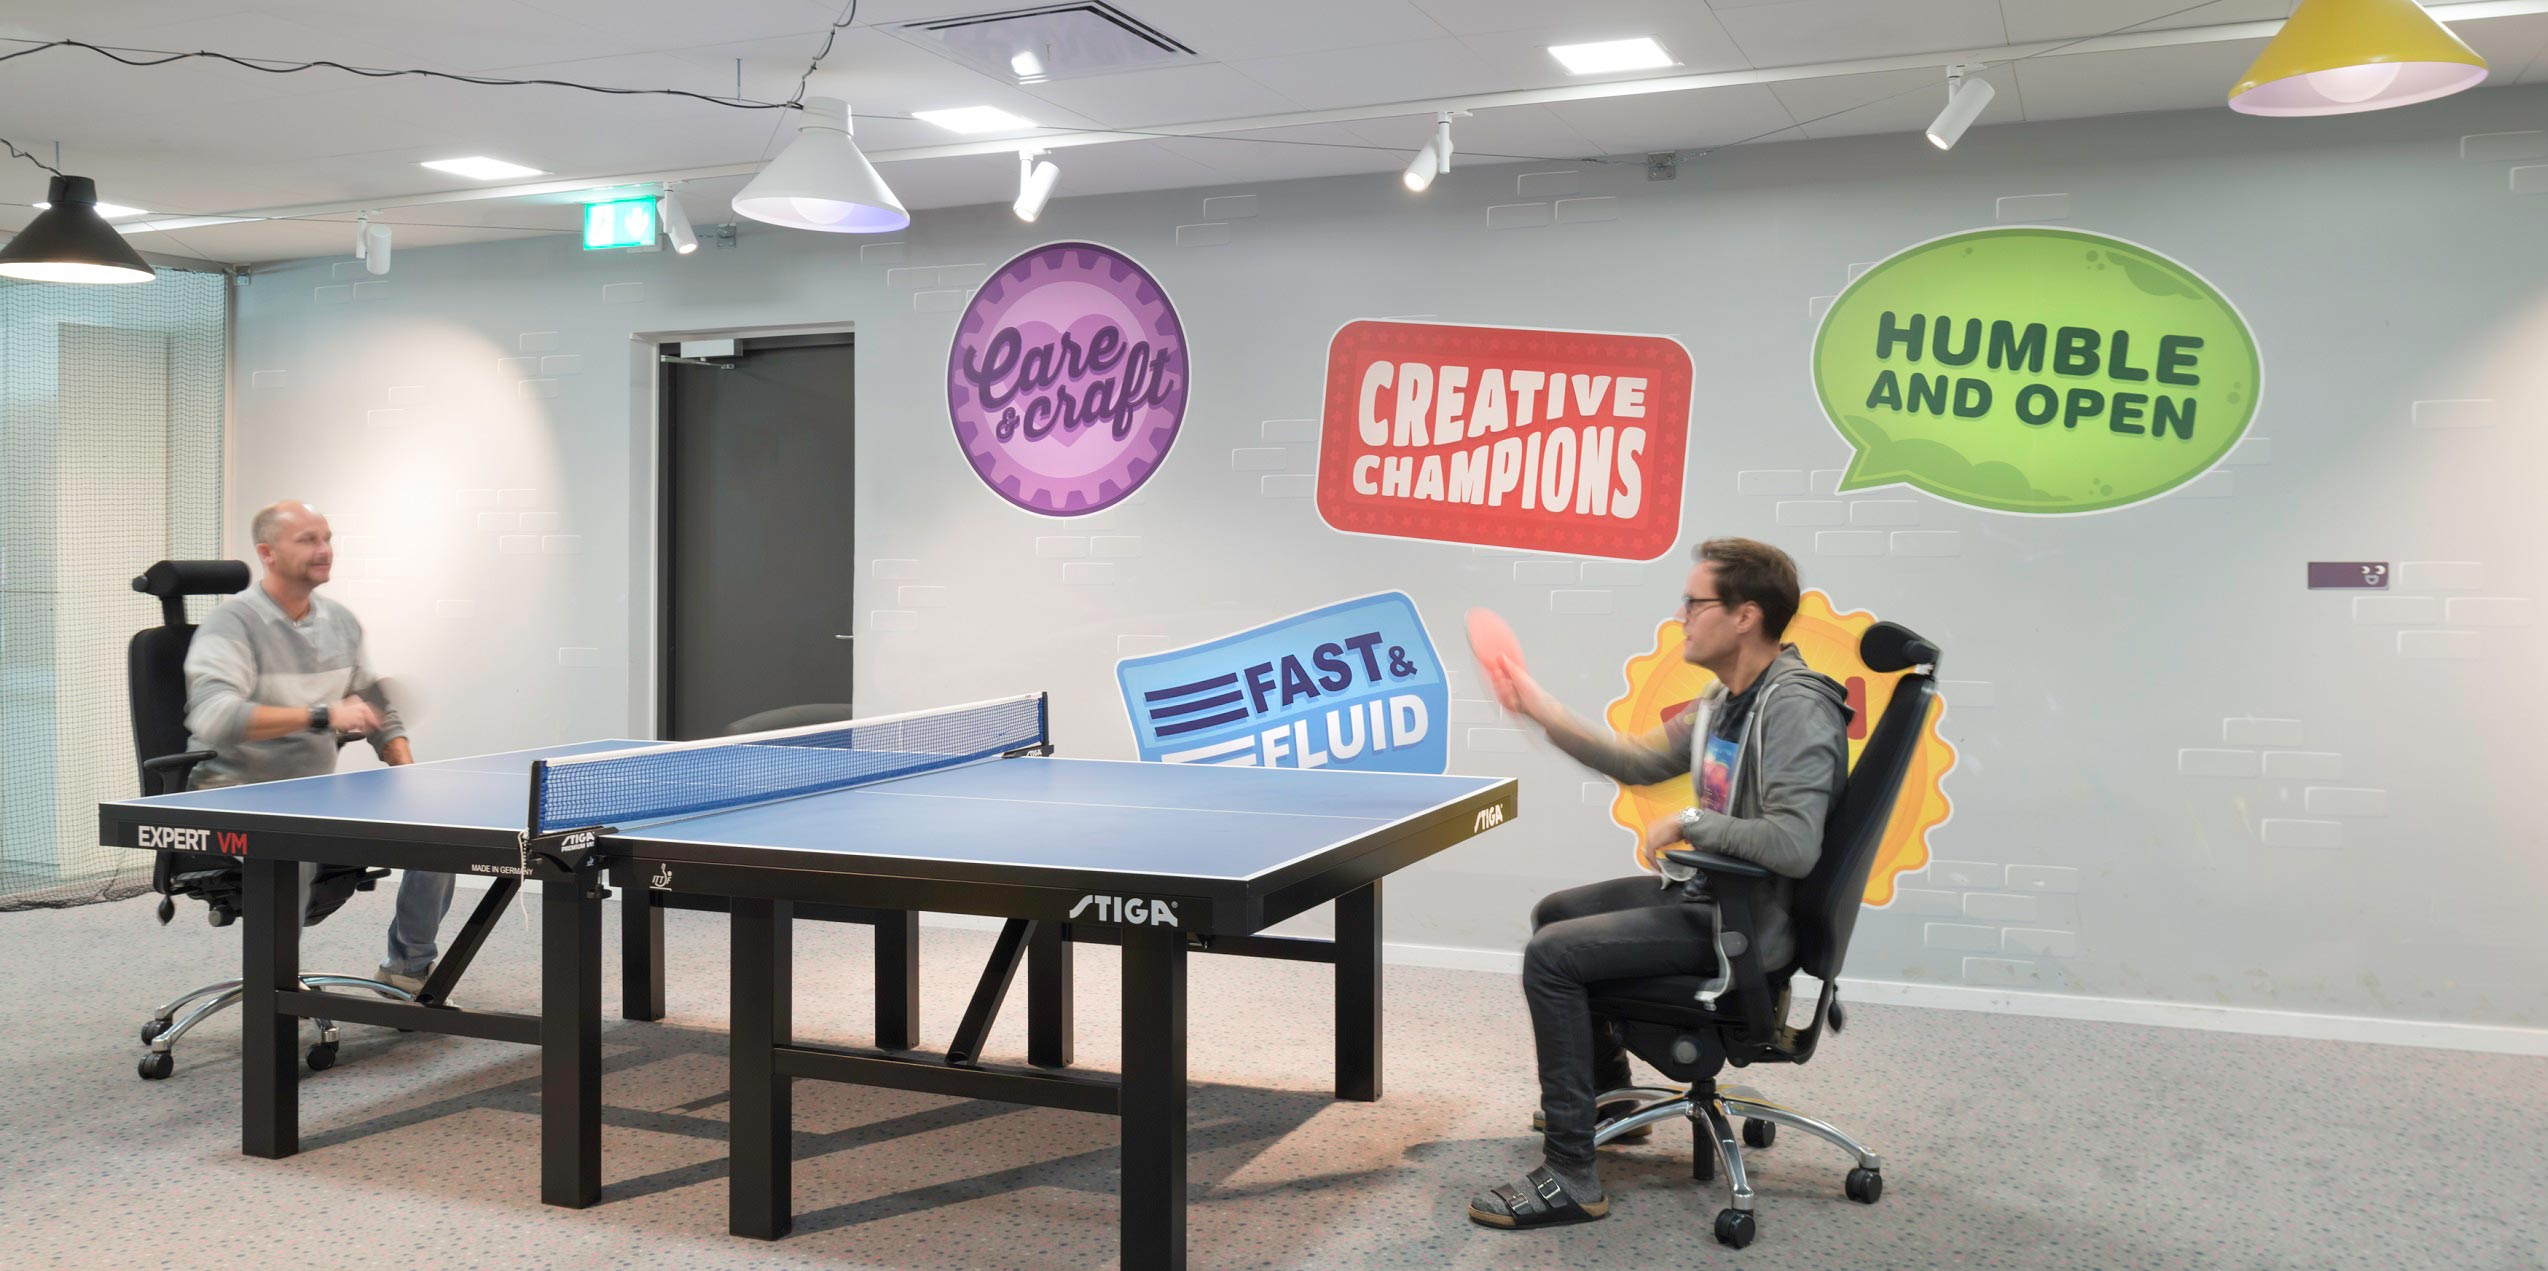 king games two people playing pingpong at work sitting in office chairs relaxing on a break